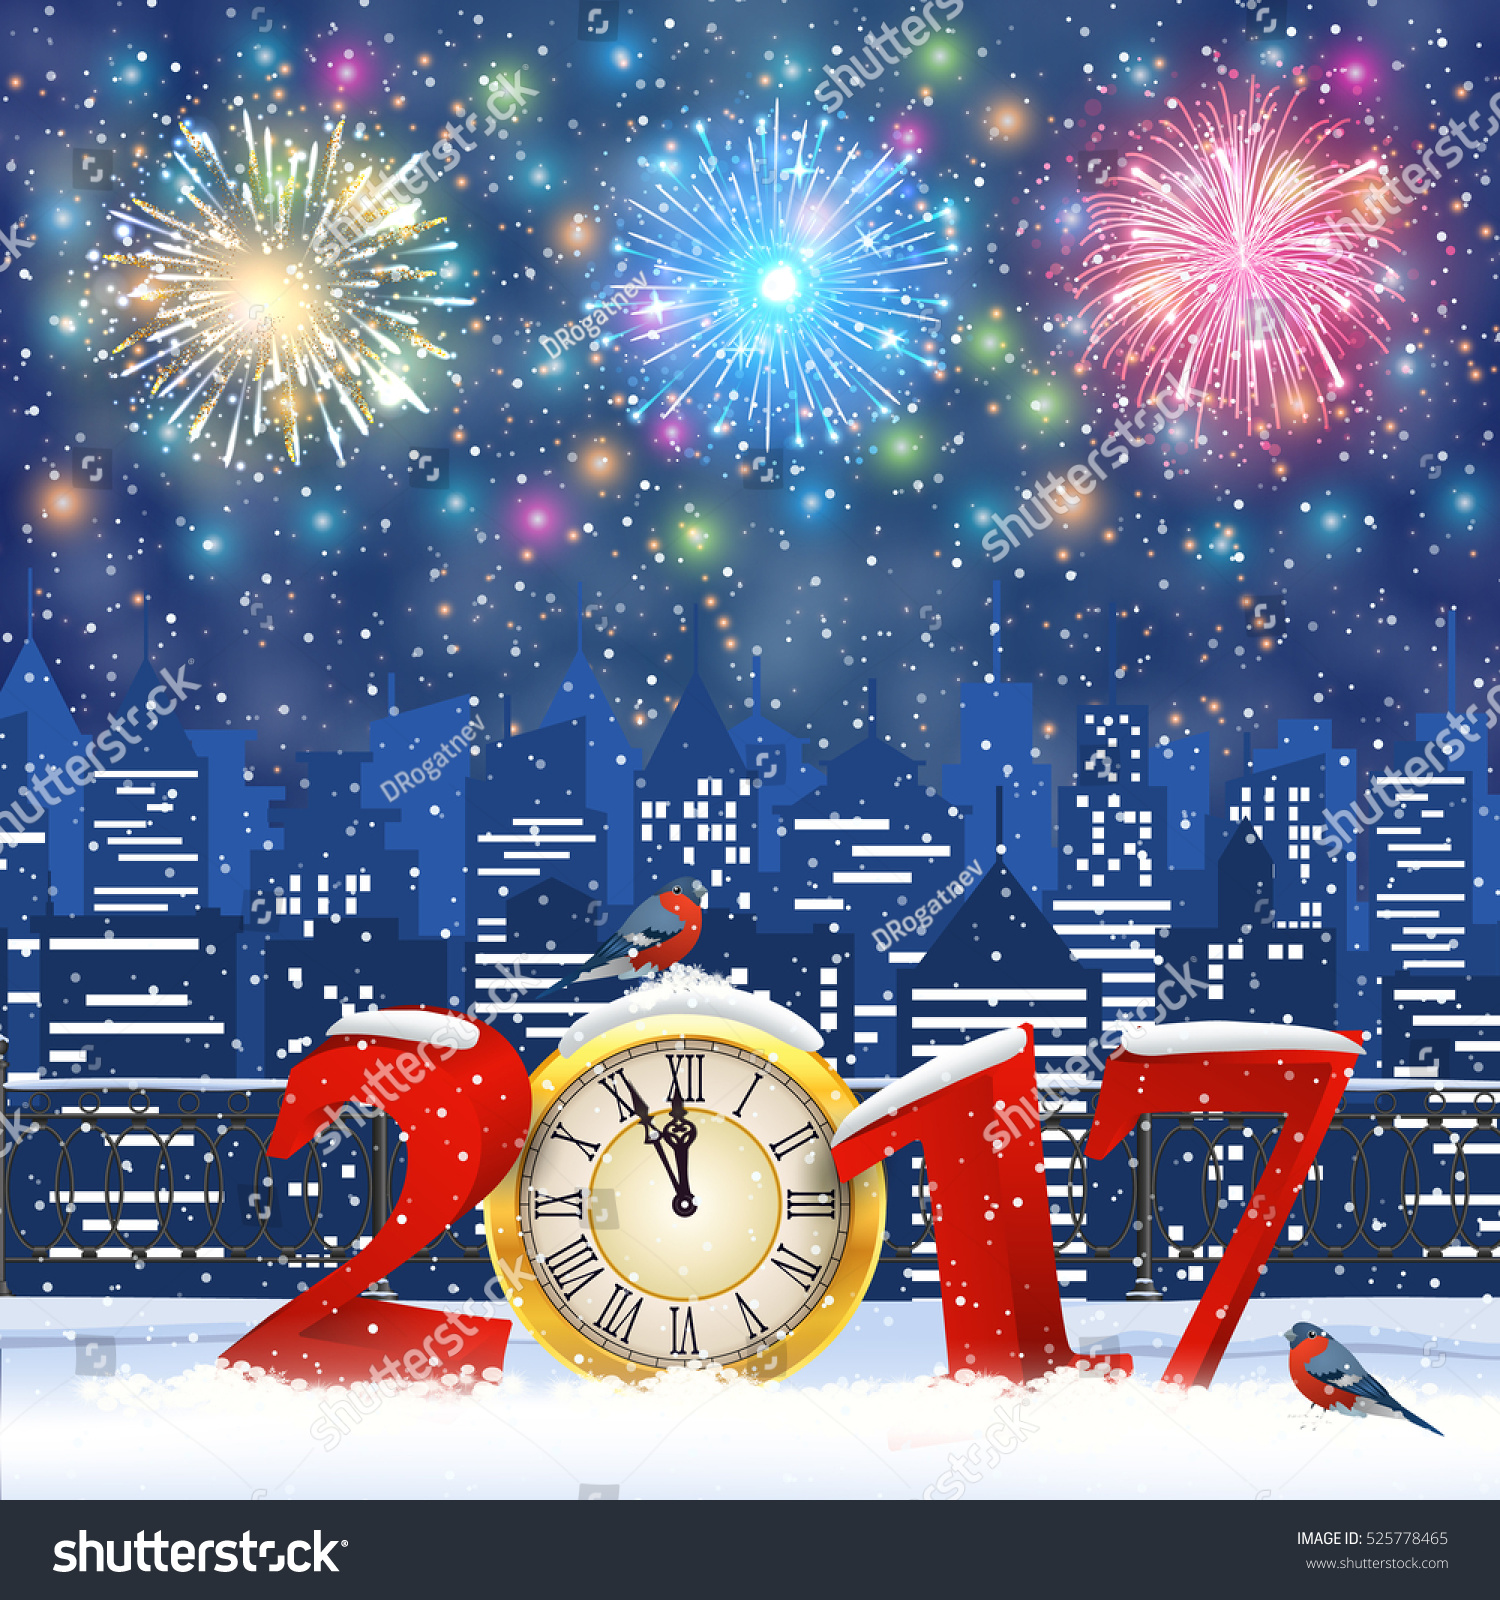 Happy New Year Merry Christmas Winter Stock Vector (Royalty Free ...